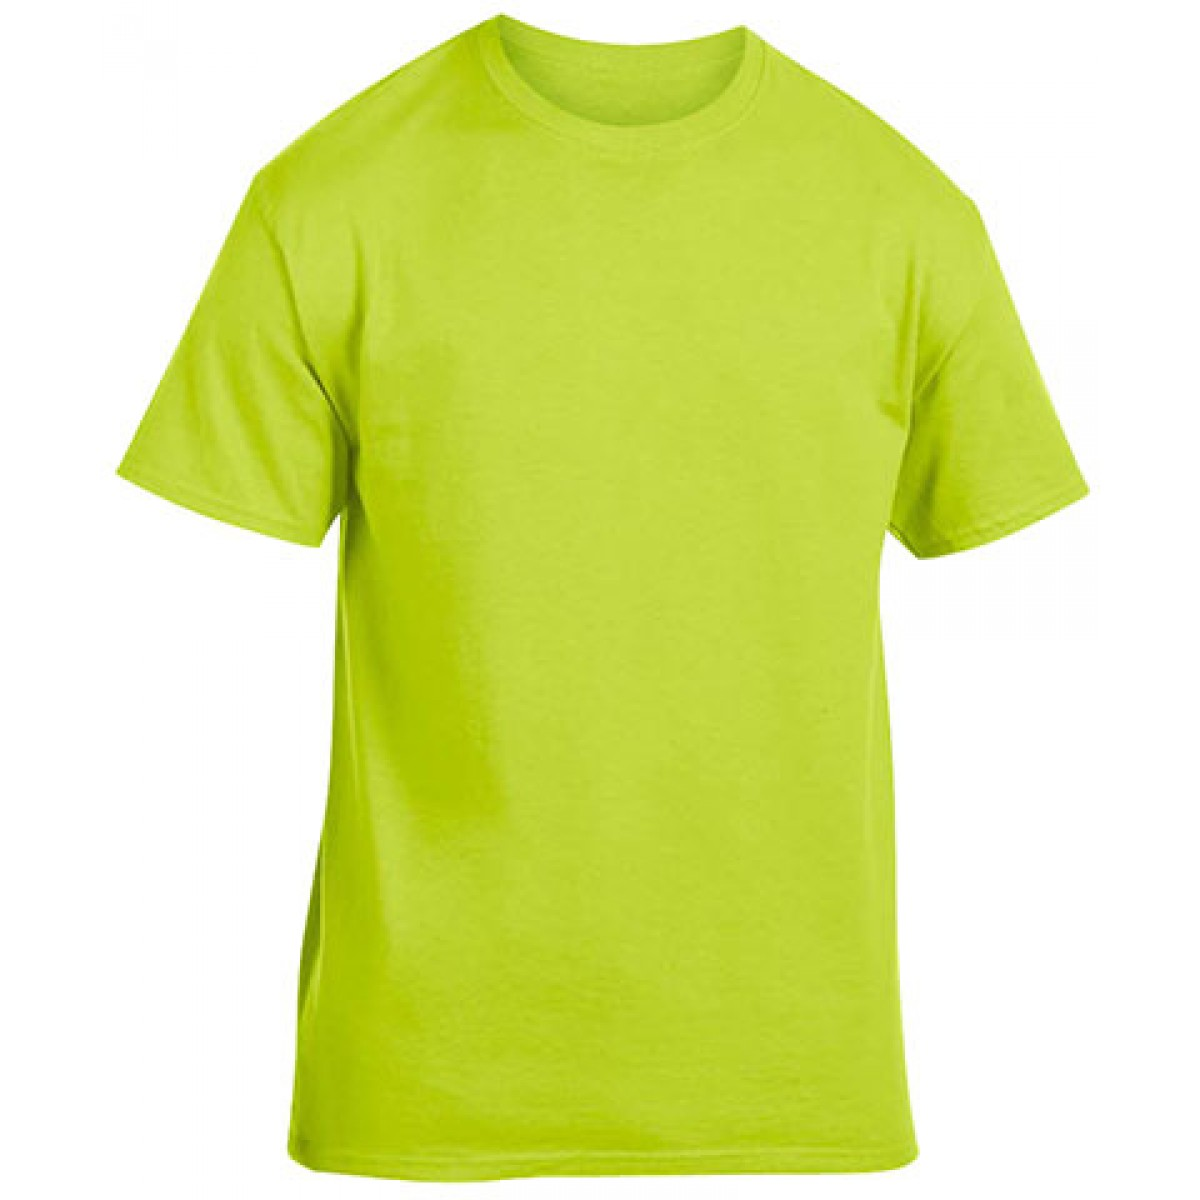 Heavy Cotton Activewear T-Shirt-Safety Green-M